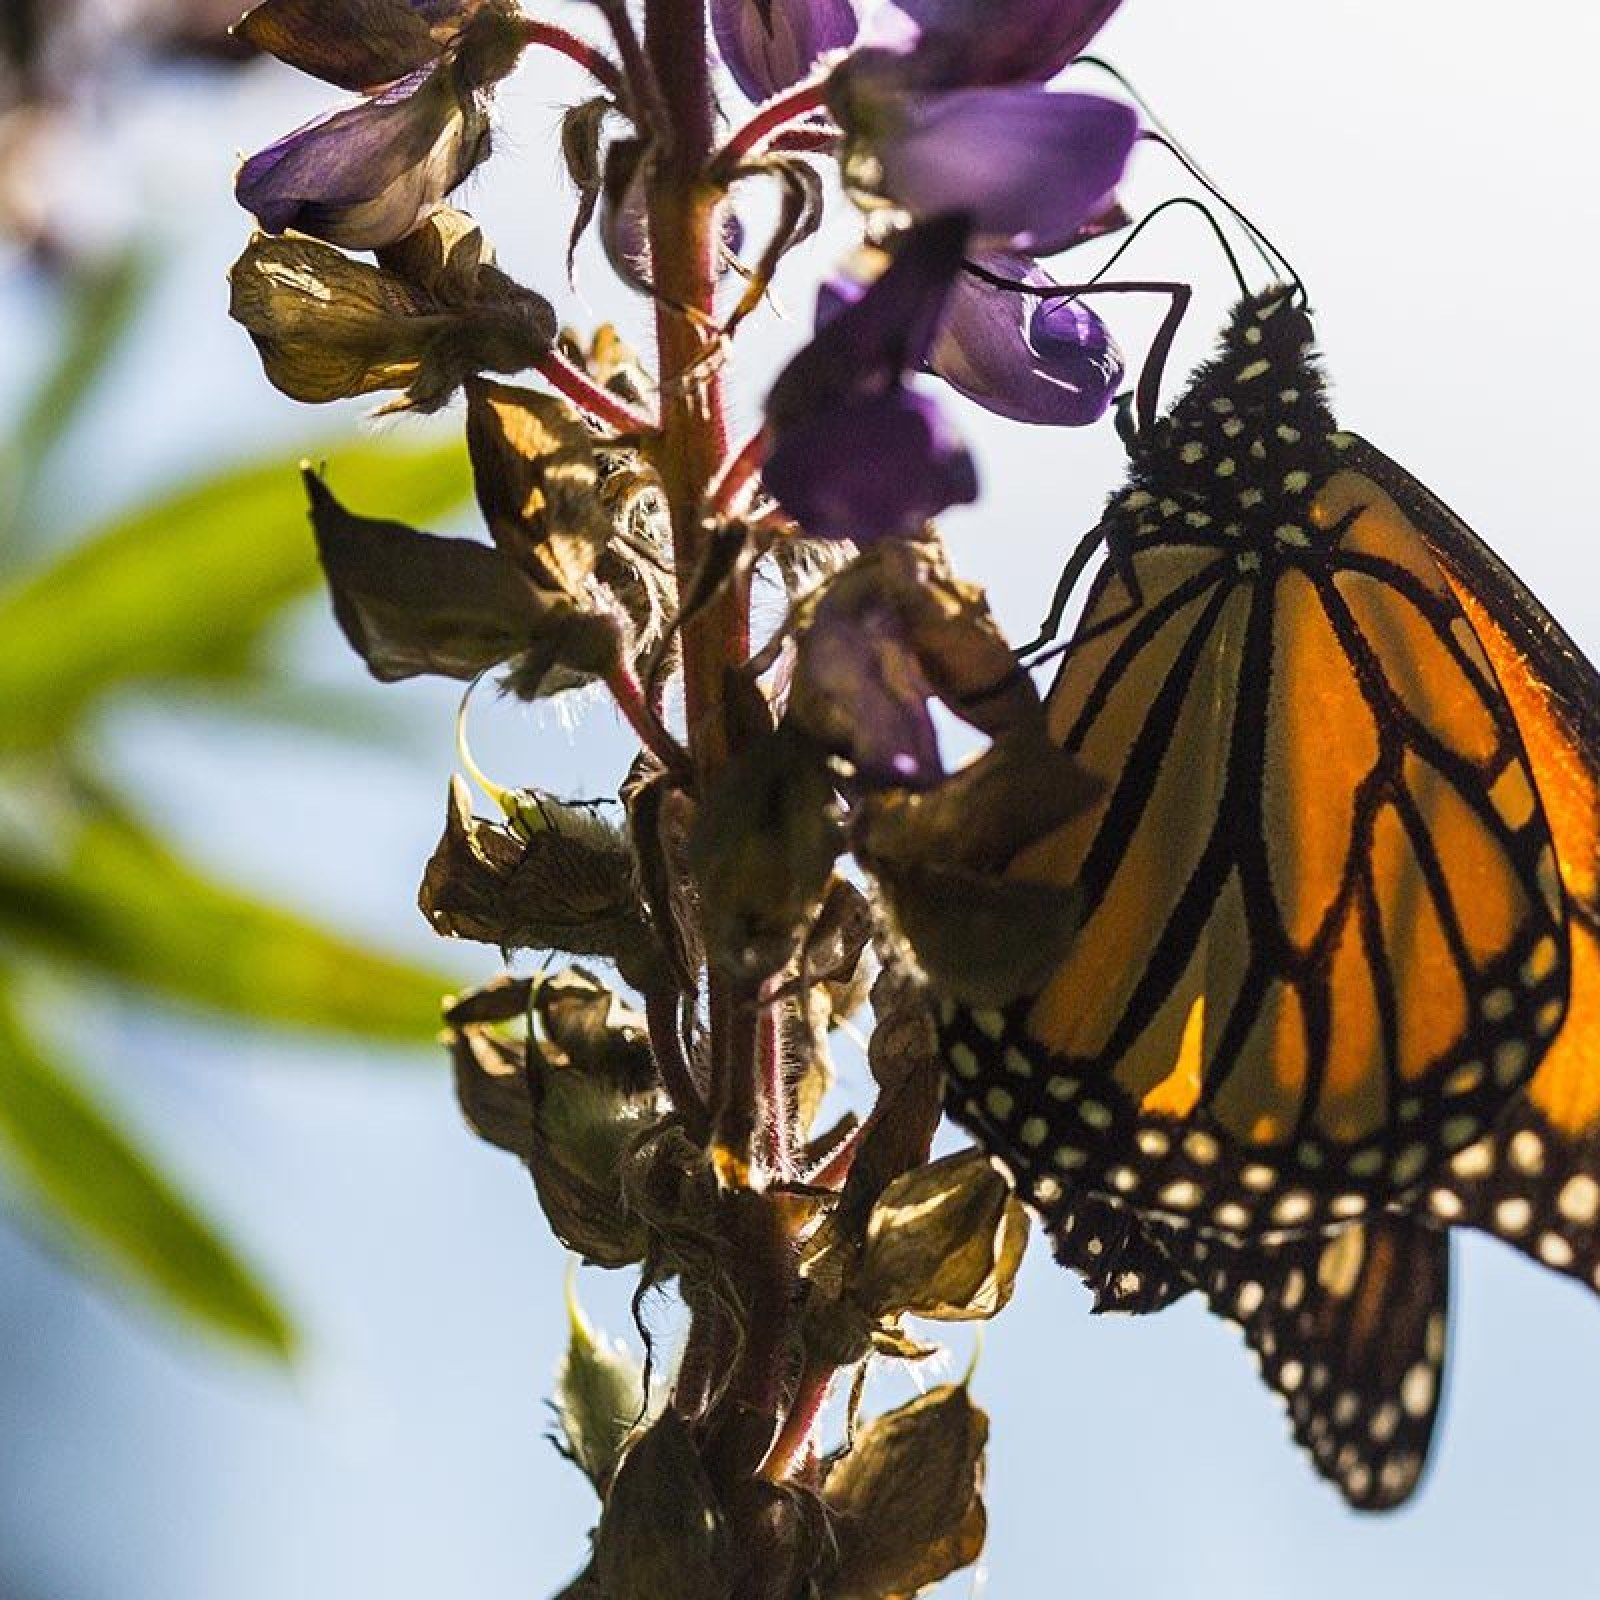 Monarch Butterflies Are Going Extinct  How Can We Save Them?